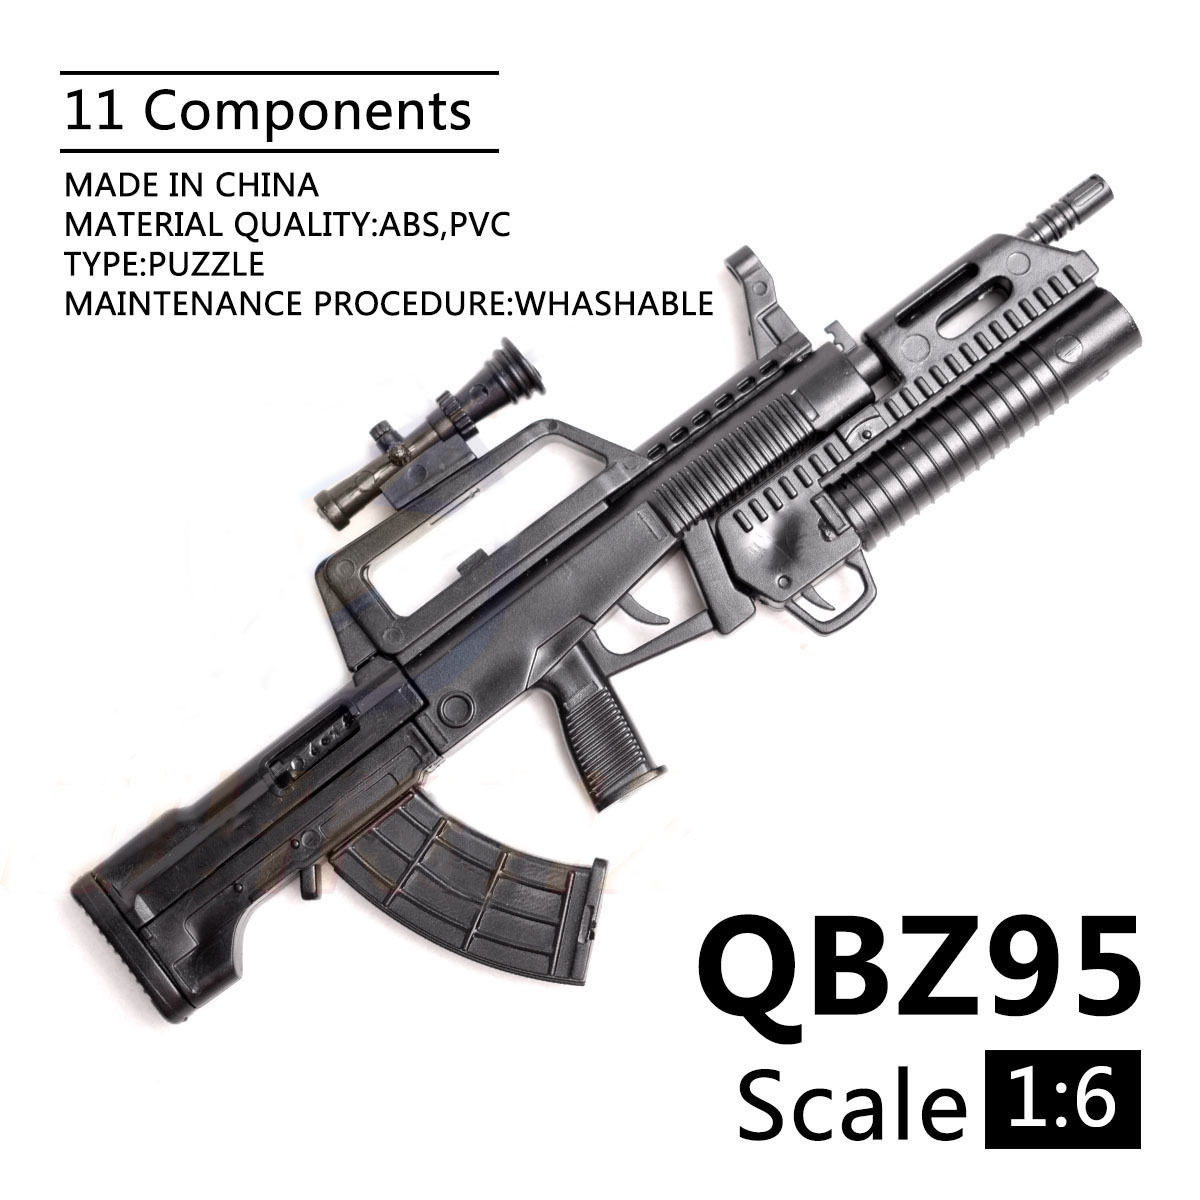 1/6 Scale PUBG Mobile QBZ-95 Rifle Toy Gun Model Assembly Puzzles Building Bricks Gun For Action Figures